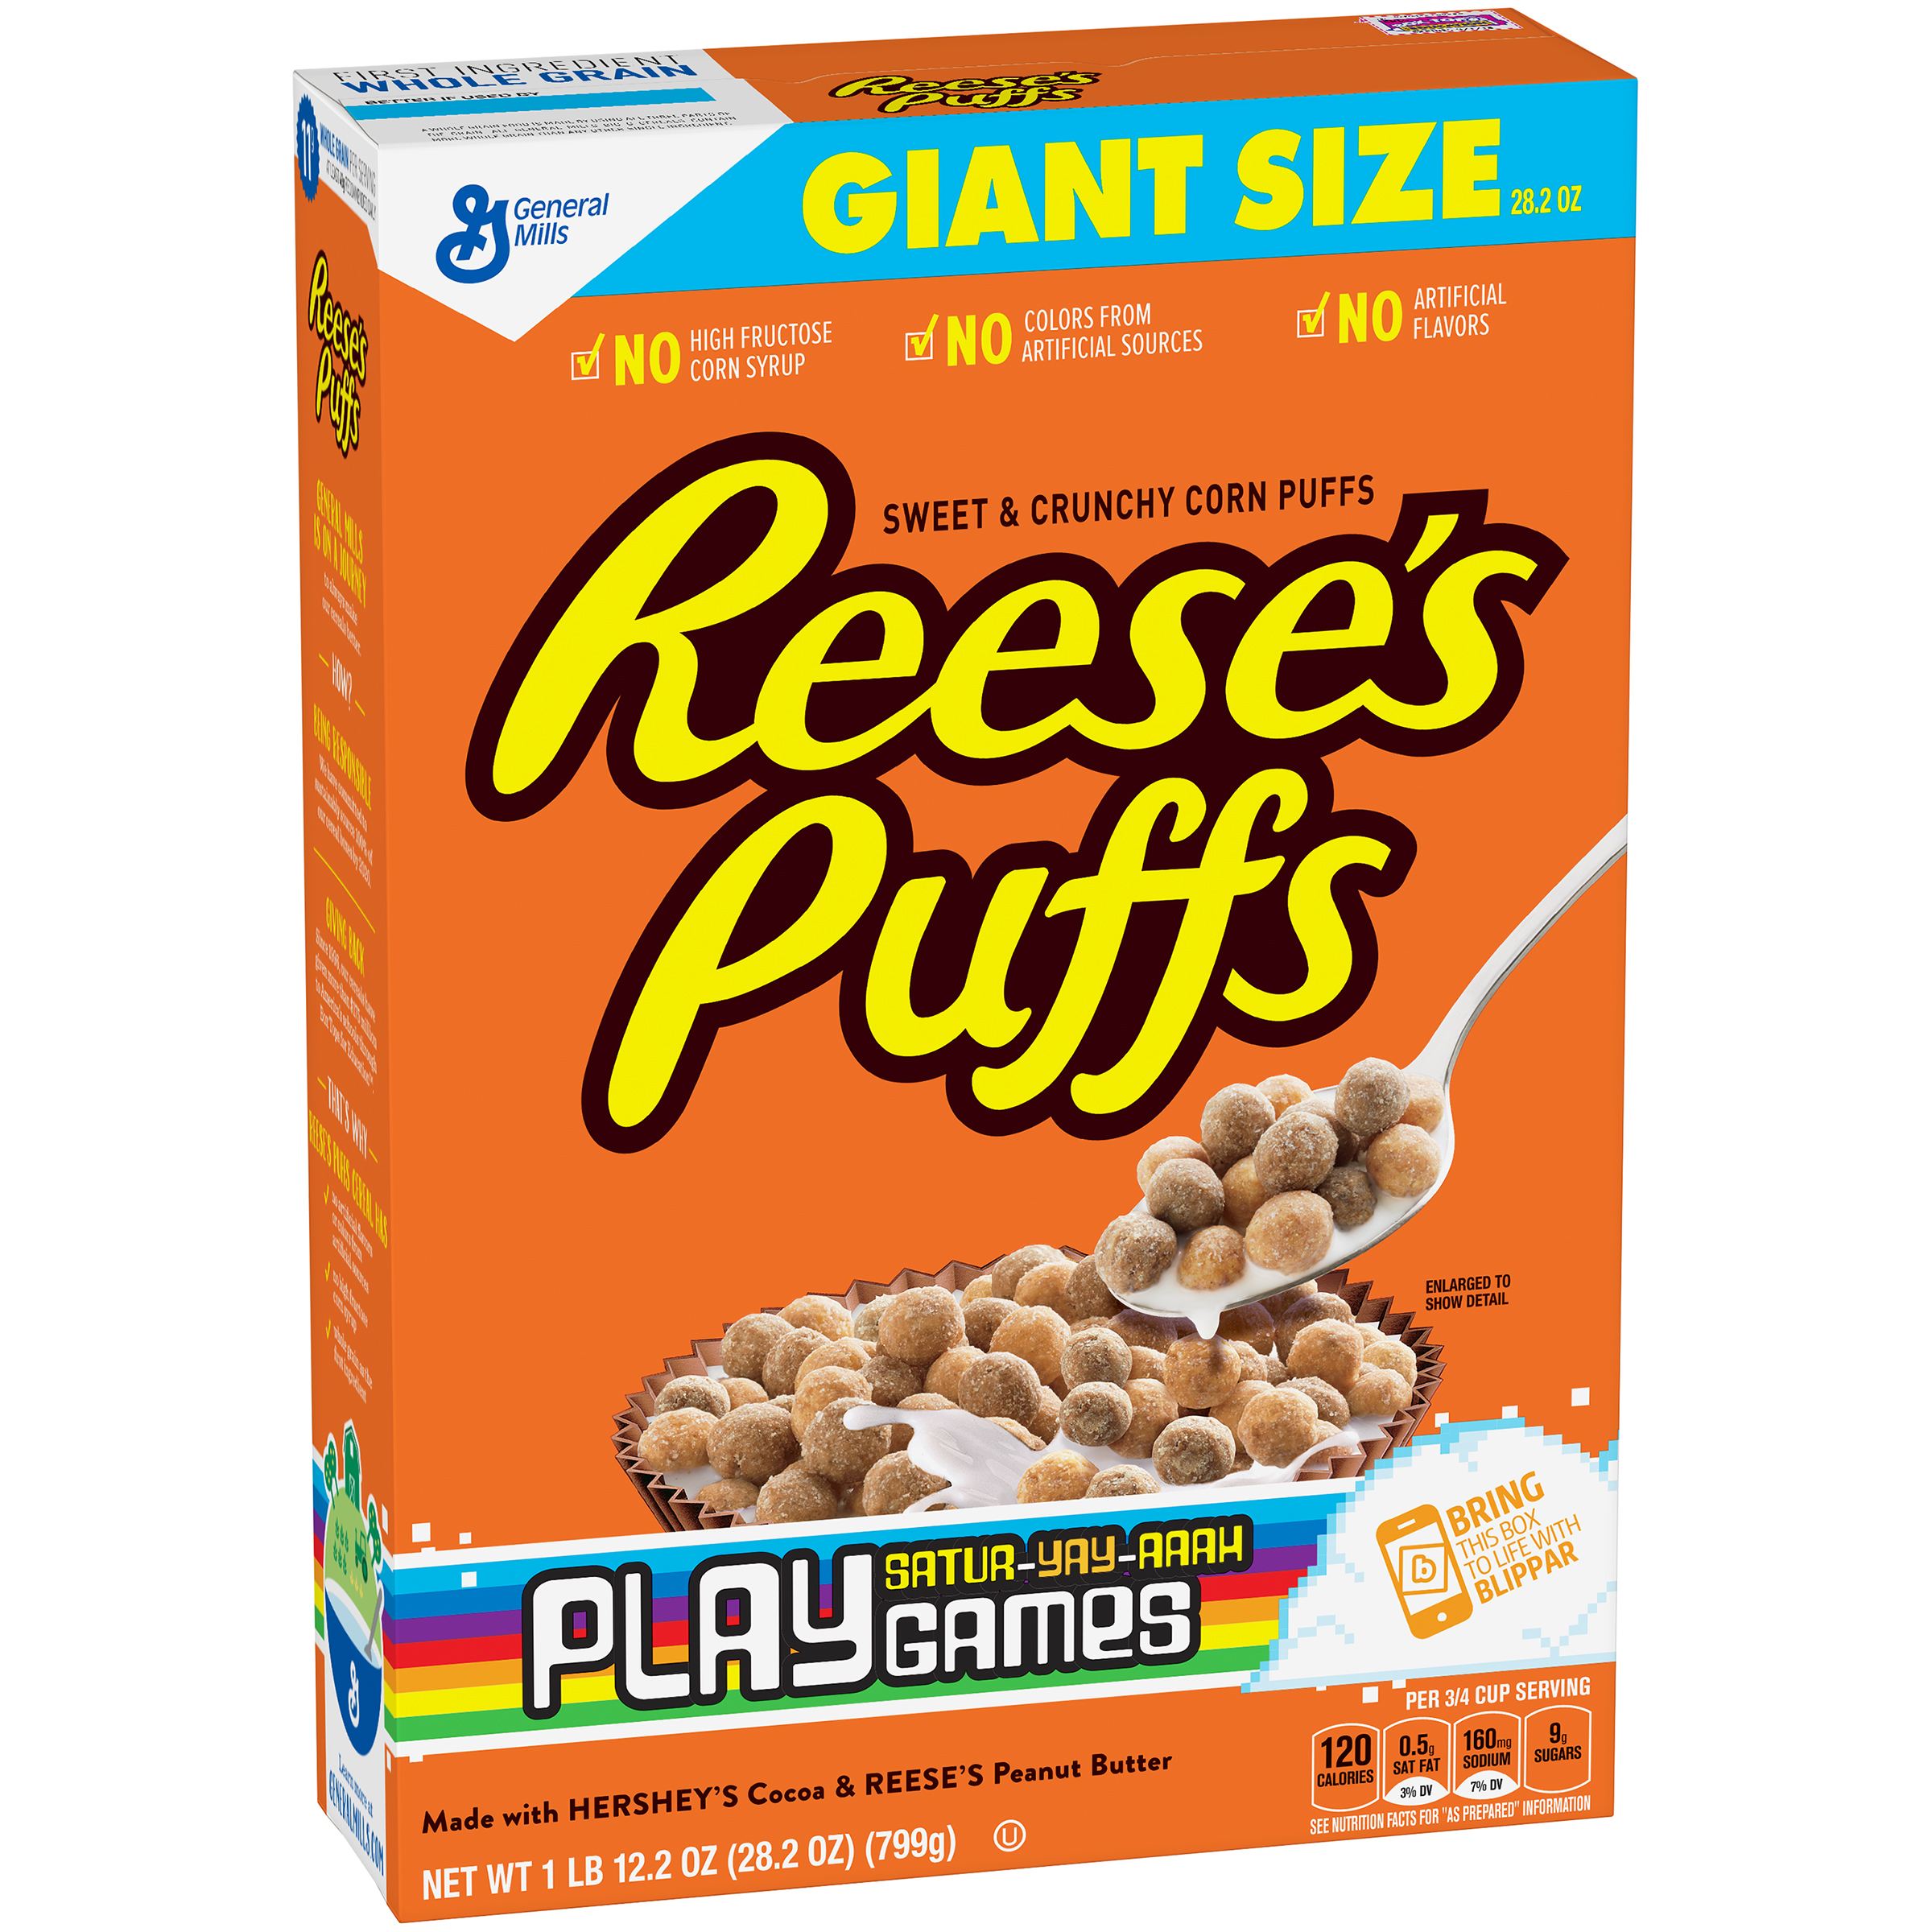 Reese's Puffs Cereal 28.2 oz. Box